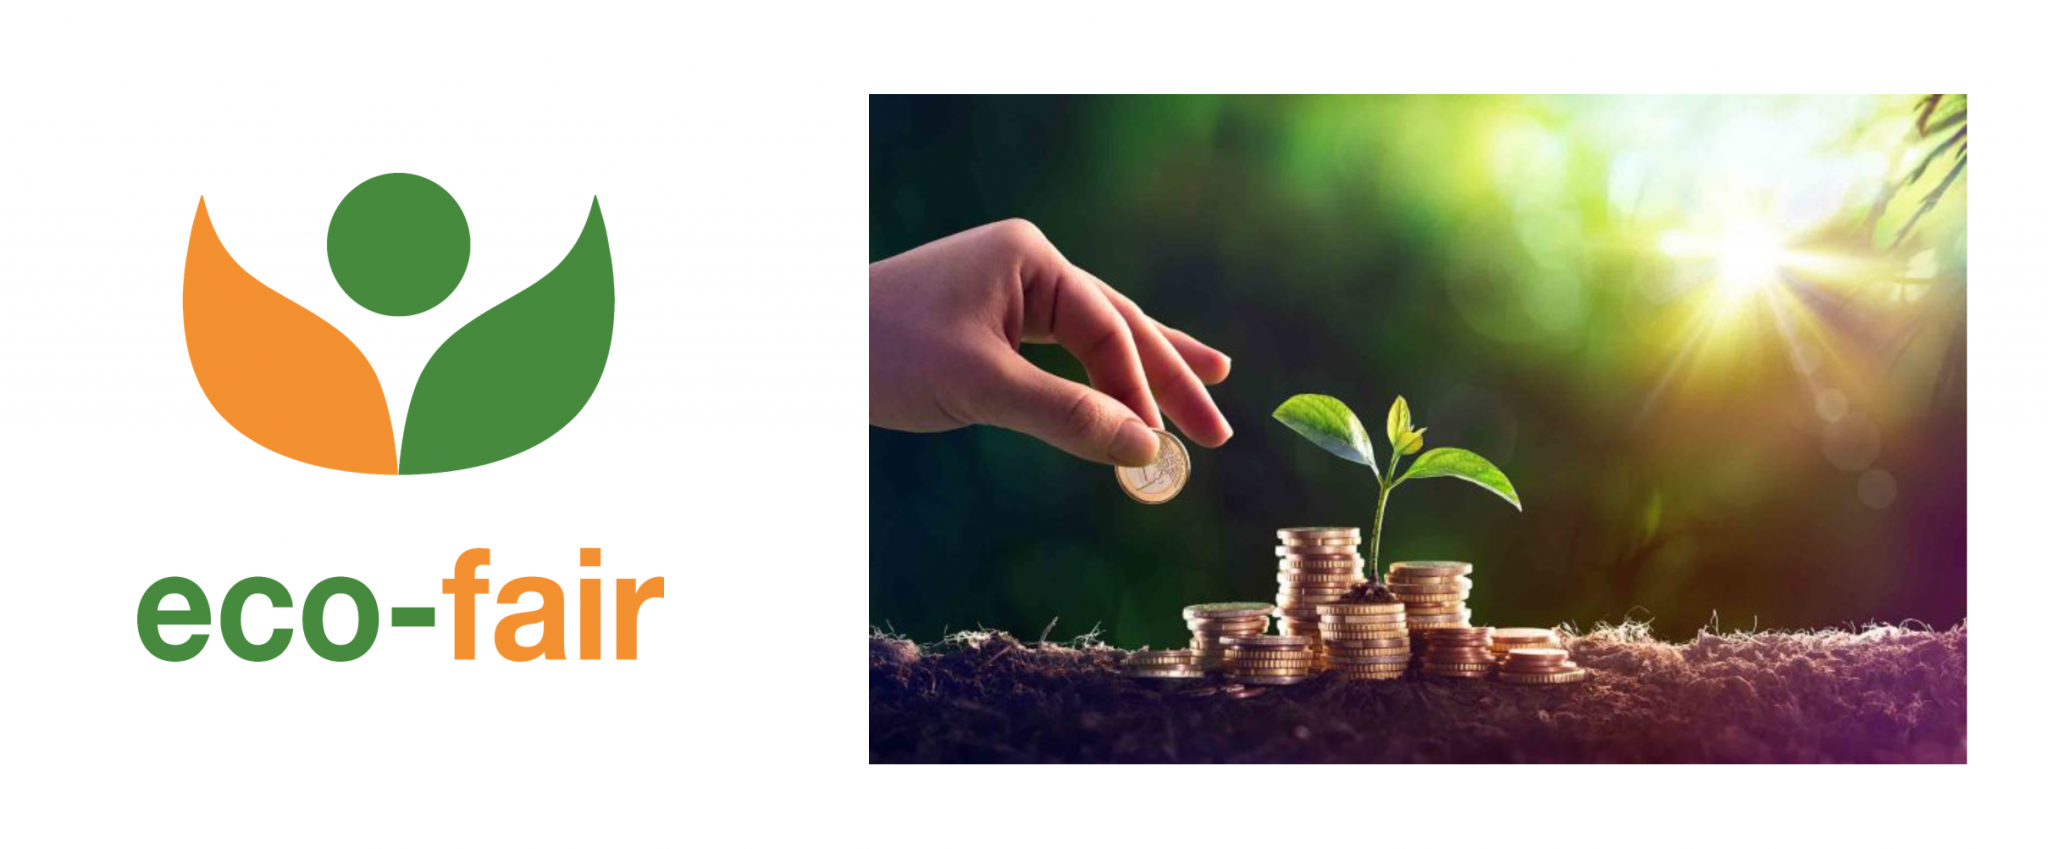 The Green Finance online course